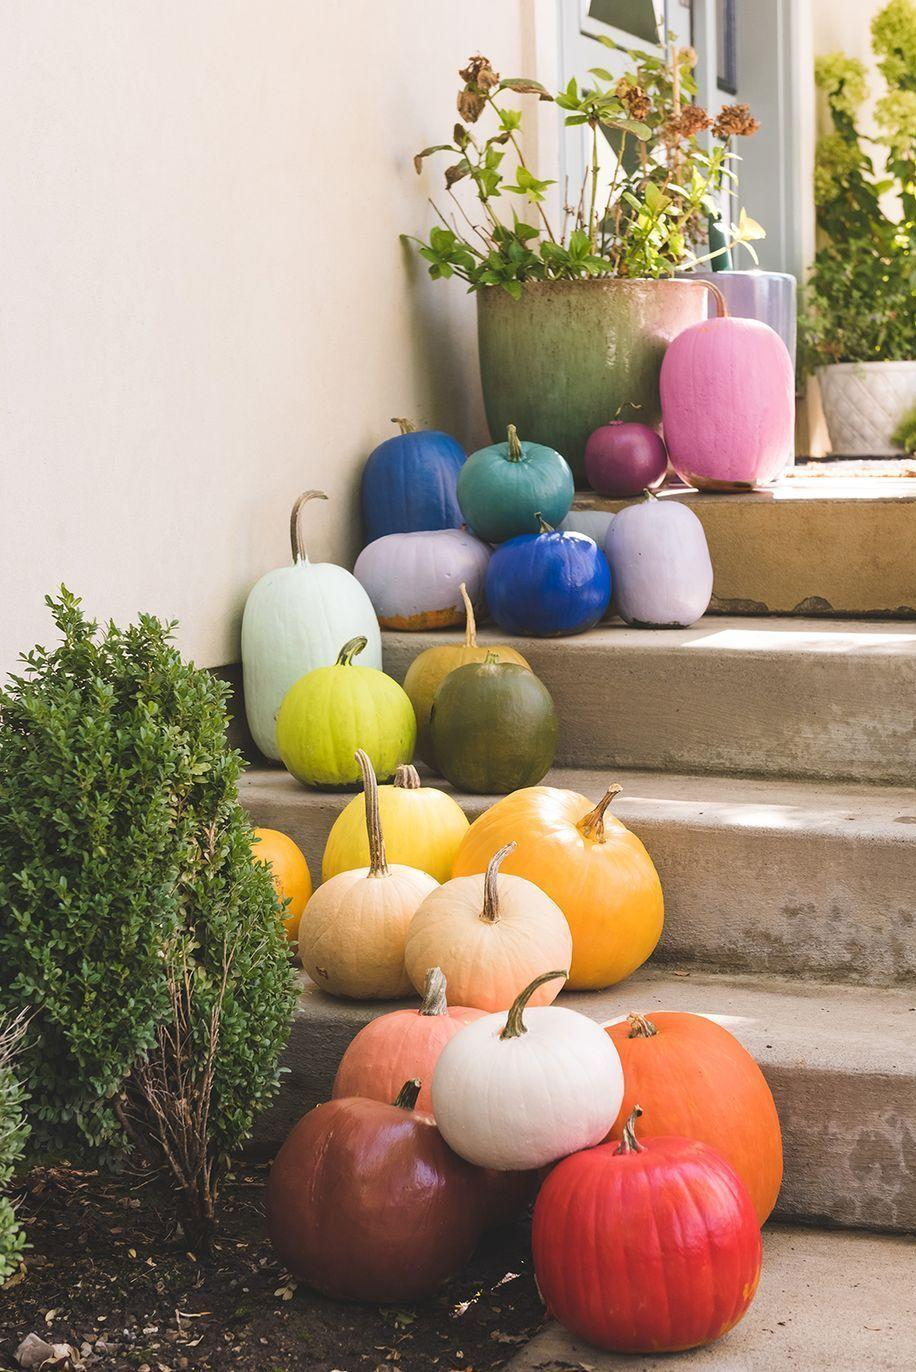 """<p>If you want to be the talk of the block, try crafting this technicolor pumpkin display. It's a fun DIY for grown-ups and kids alike. </p><p><strong>Get the tutorial at <a href=""""https://thehousethatlarsbuilt.com/2018/10/diy-rainbow-pumpkins.html/"""" rel=""""nofollow noopener"""" target=""""_blank"""" data-ylk=""""slk:The House That Lars Built"""" class=""""link rapid-noclick-resp"""">The House That Lars Built</a>.</strong></p><p><a class=""""link rapid-noclick-resp"""" href=""""https://go.redirectingat.com?id=74968X1596630&url=https%3A%2F%2Fwww.walmart.com%2Fsearch%2F%3Fquery%3Dfaux%2Bpumpkins&sref=https%3A%2F%2Fwww.thepioneerwoman.com%2Fholidays-celebrations%2Fg32894423%2Foutdoor-halloween-decorations%2F"""" rel=""""nofollow noopener"""" target=""""_blank"""" data-ylk=""""slk:SHOP FAUX PUMPKINS""""><strong>SHOP FAUX PUMPKINS</strong></a></p>"""